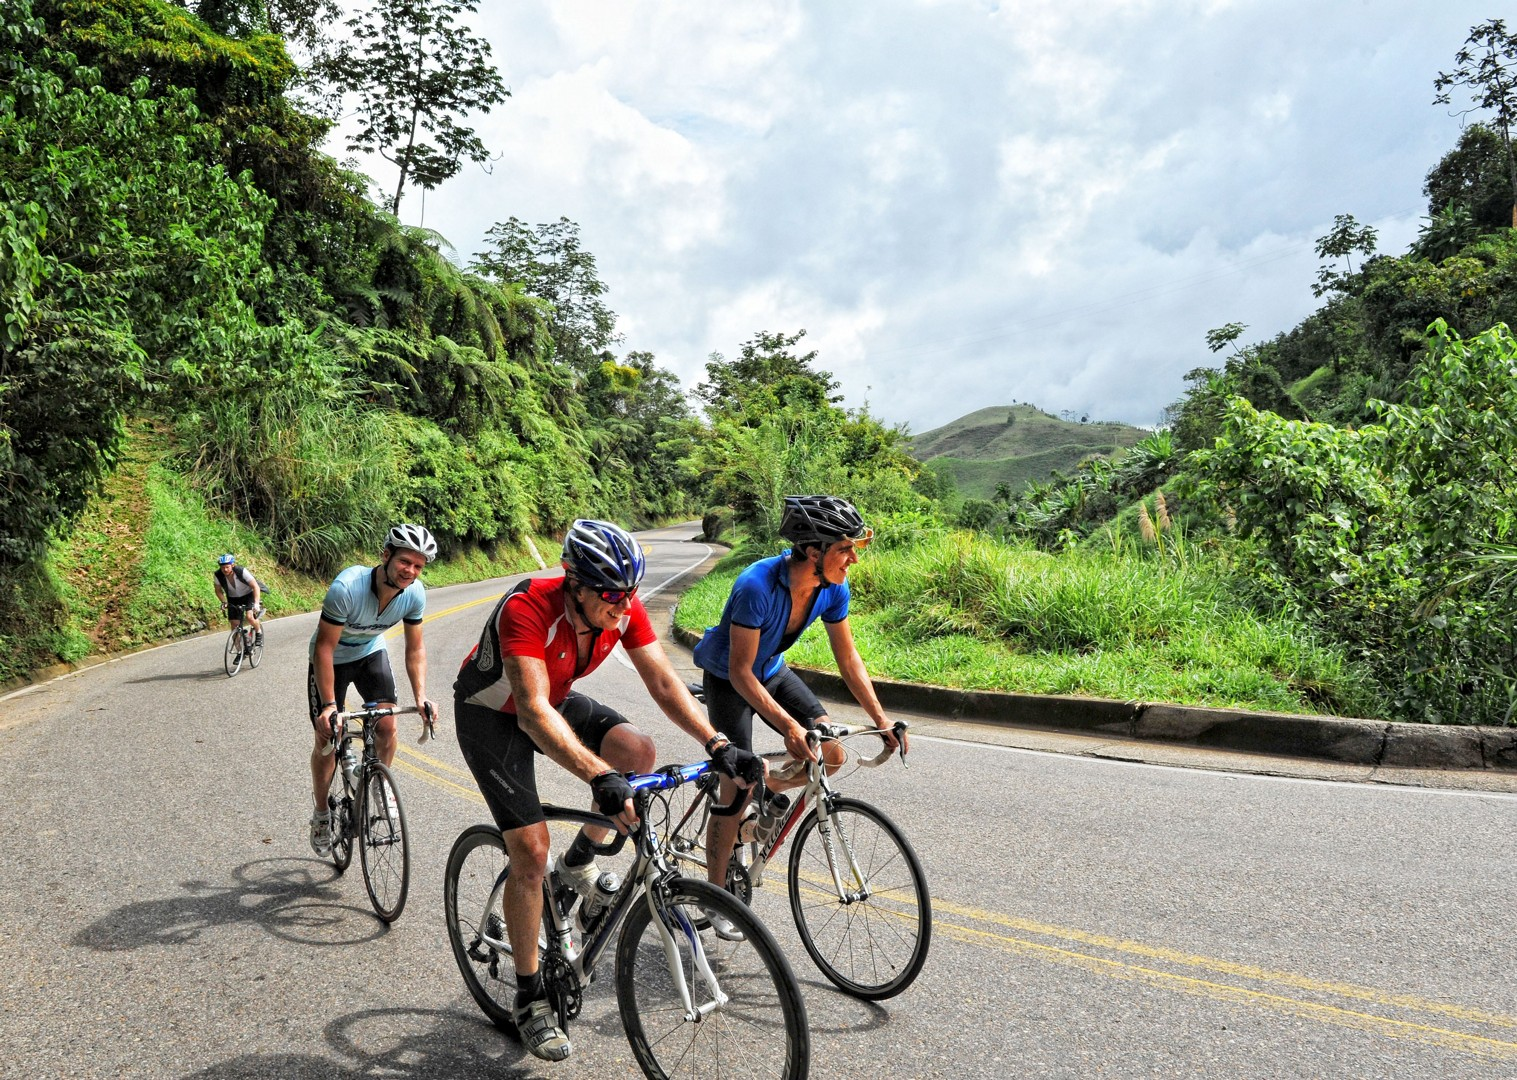 guided-road-cycling-holiday-emerald-mountains-colombia.jpg - Colombia - Tres Cordilleras - Guided Road Cycling Holiday - Road Cycling